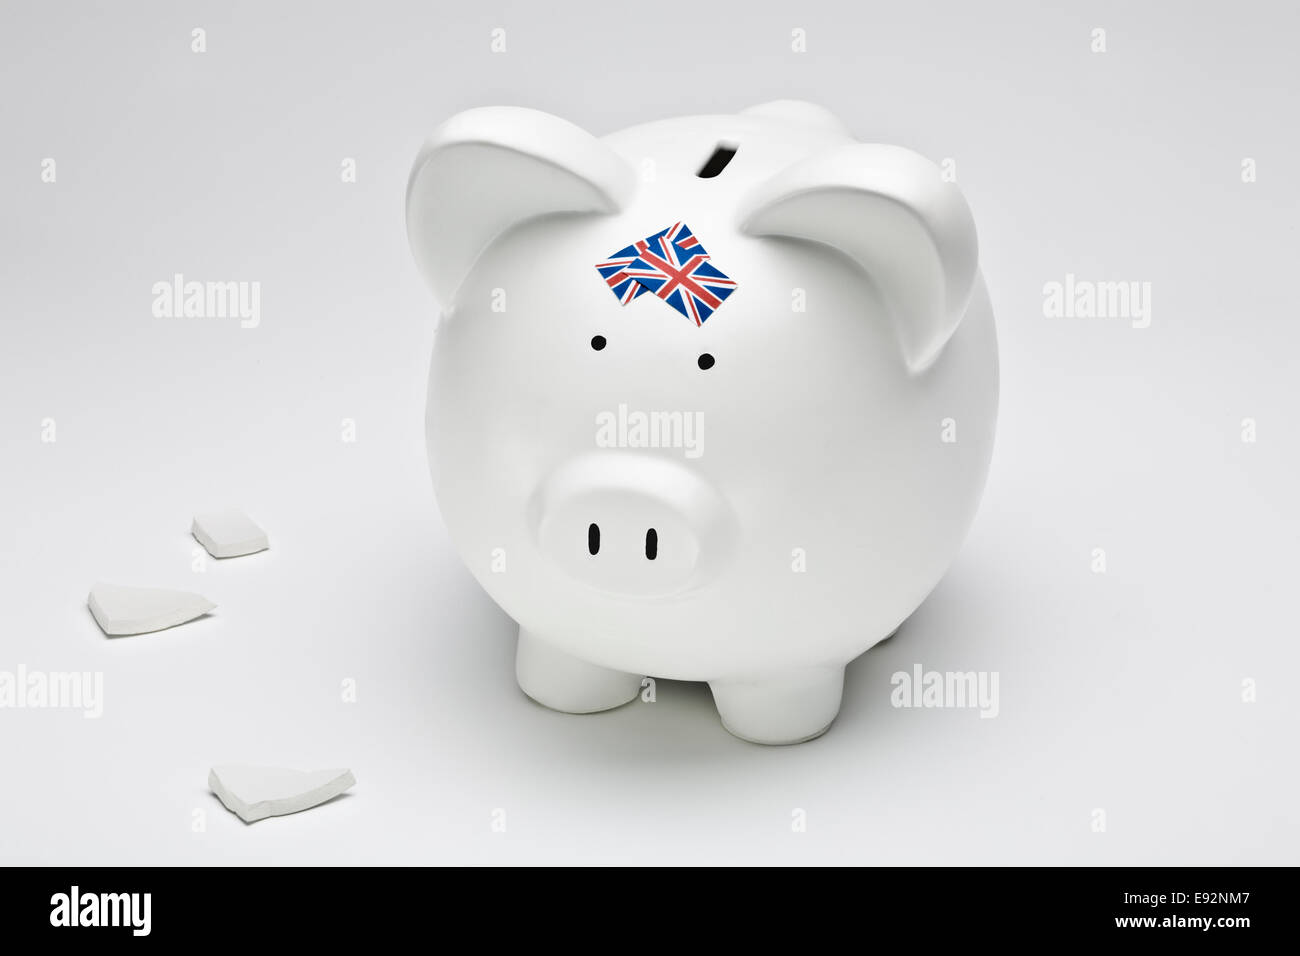 Broken white ceramic piggy bank with UK flags on a white surface - Stock Image